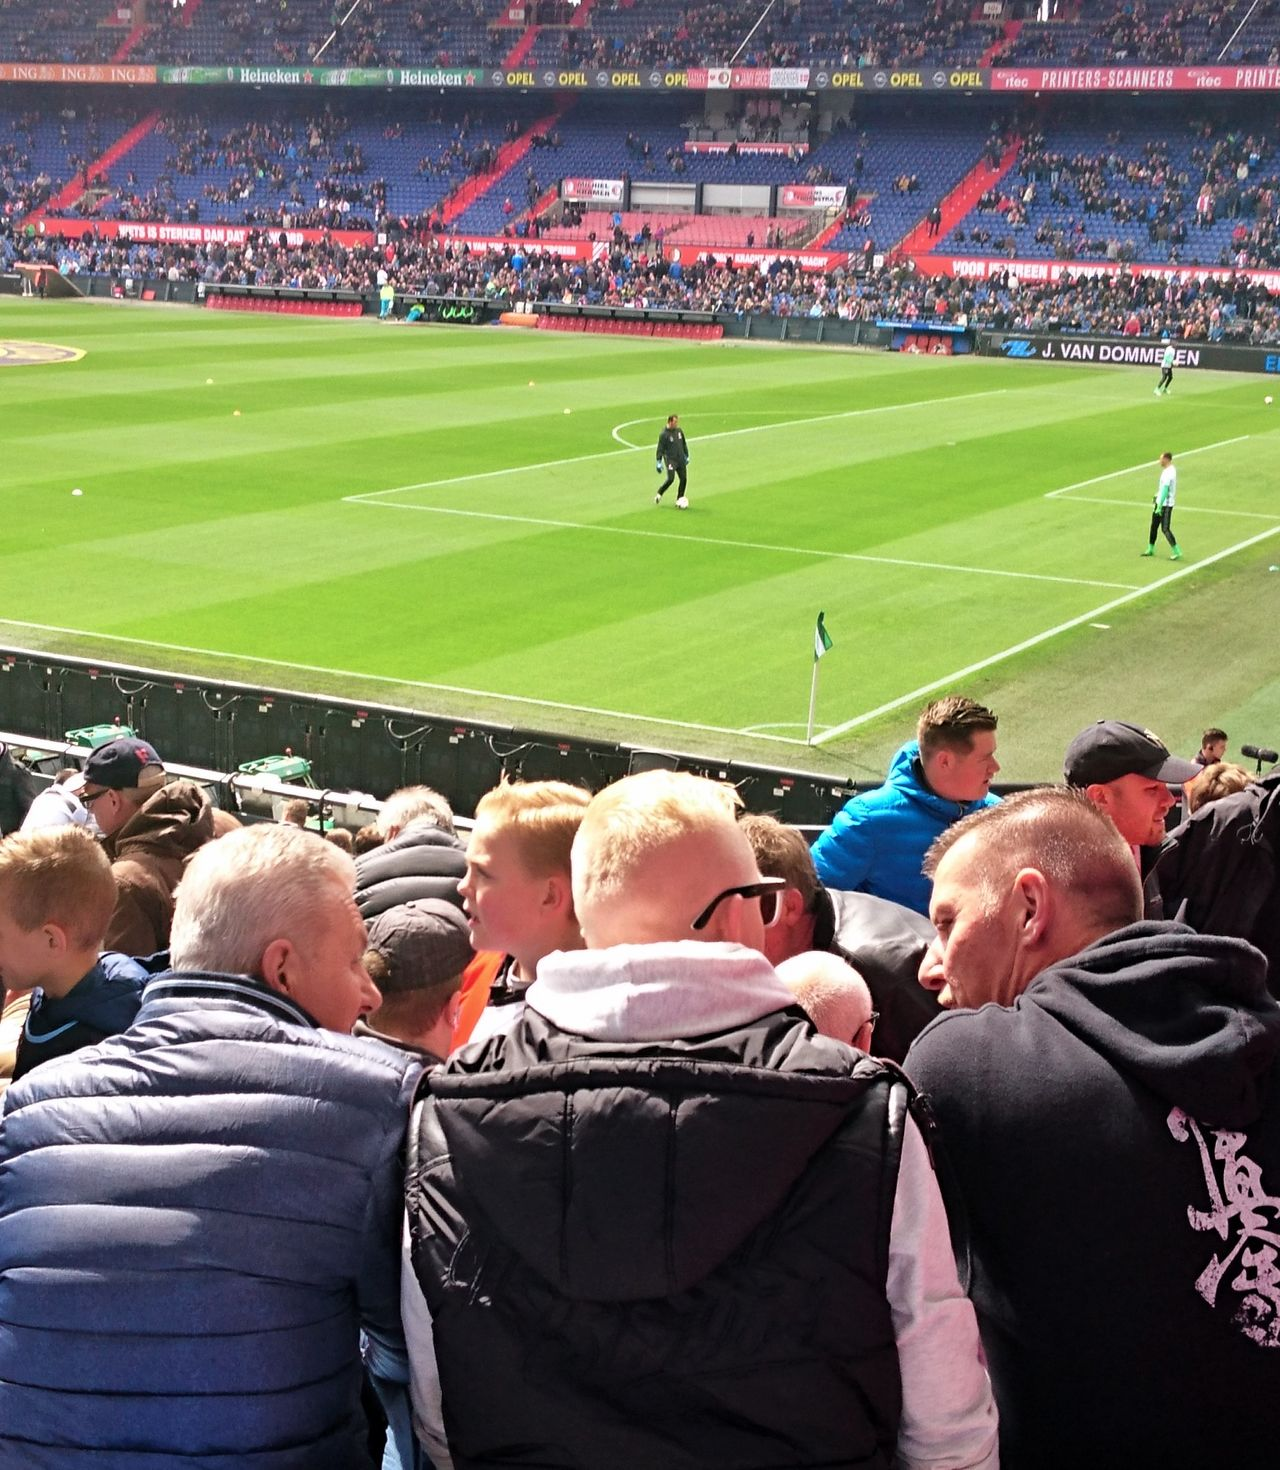 Soccer Stadium Football Feyenoord Feyutr Grass Team Sport Spectator Fans Before The Game Activity Supporter Togetherness (c) 2017 Shangita Bose All Rights Reserved From My Point Of View Feyenoord Rotterdam Fan - Enthusiast Audience Stadium Architecture De Kuip Rotterdam Netherlands